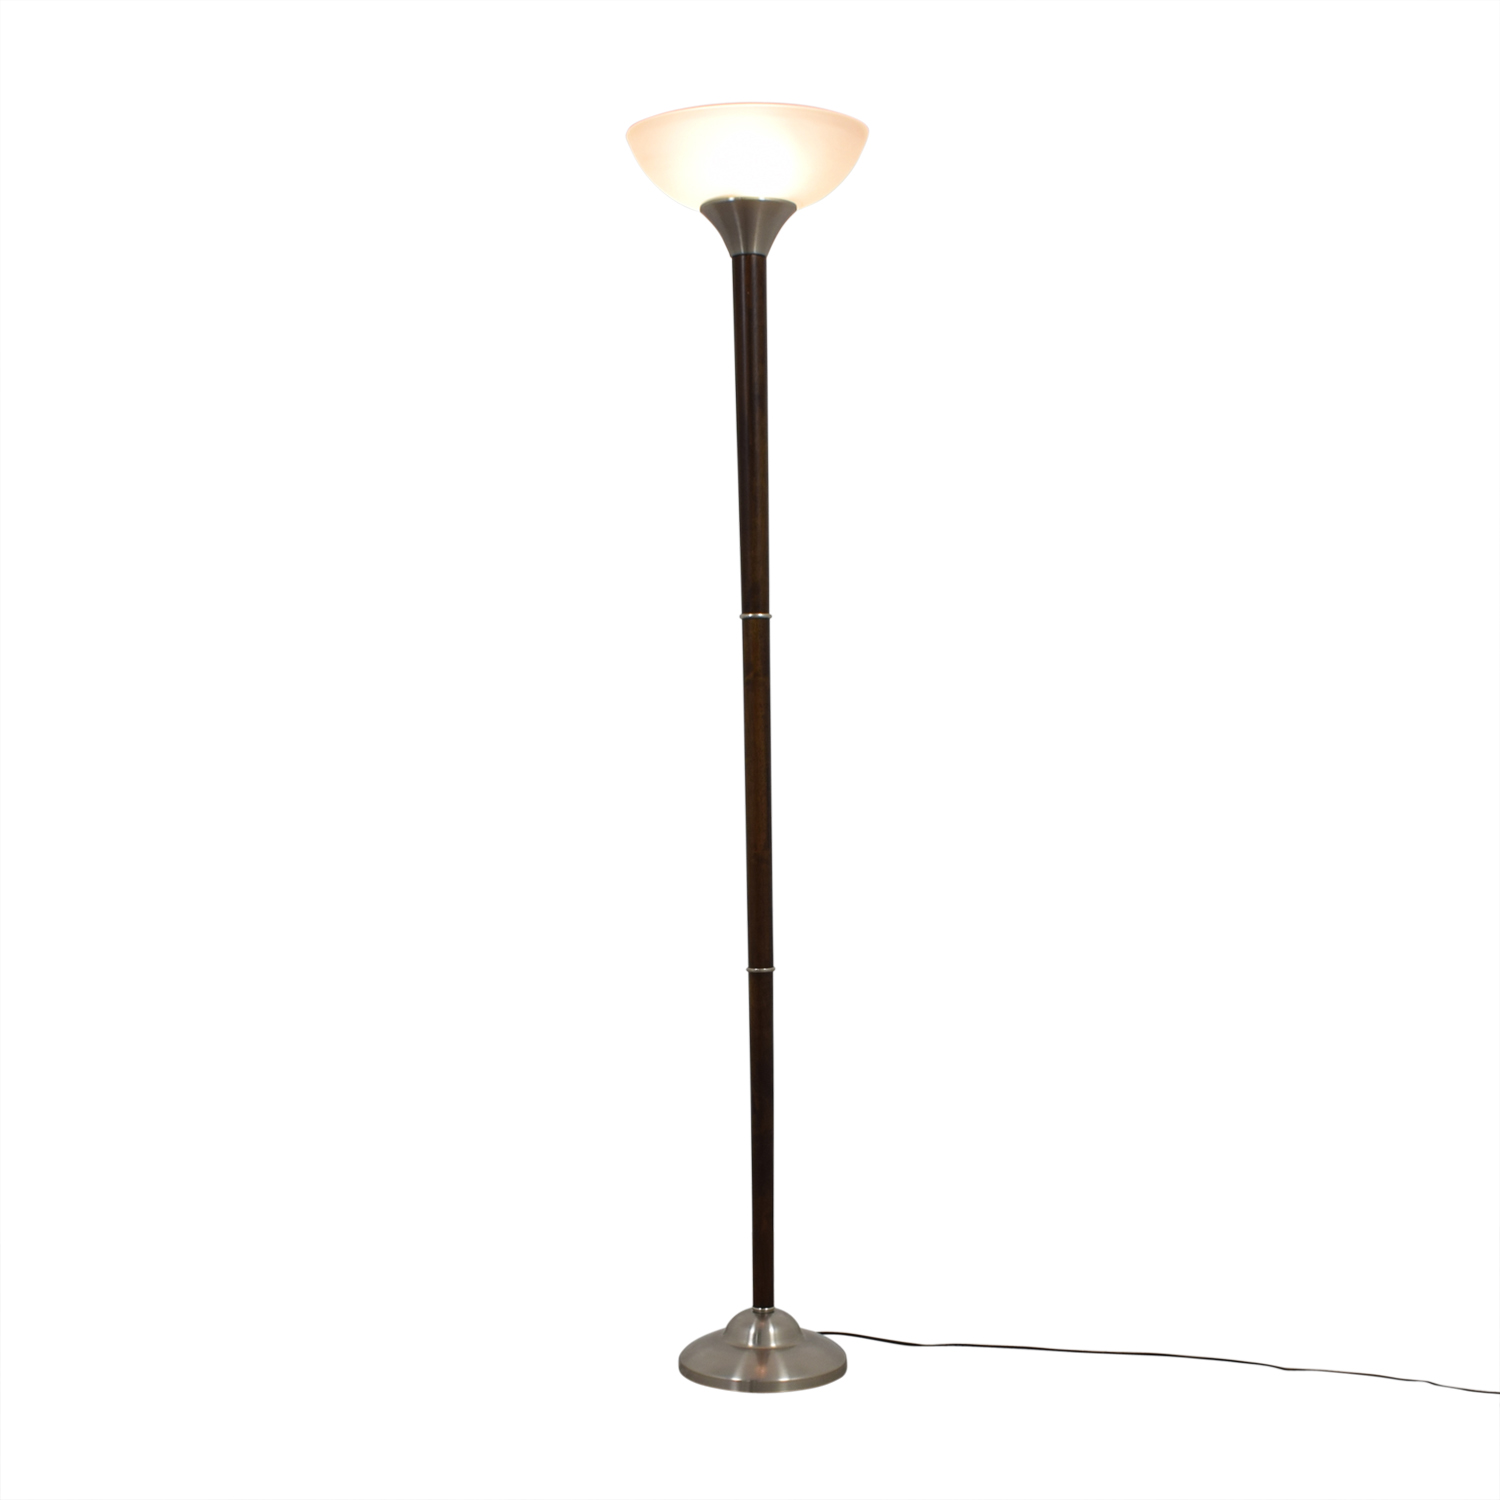 Dome Floor Lamp / Decor